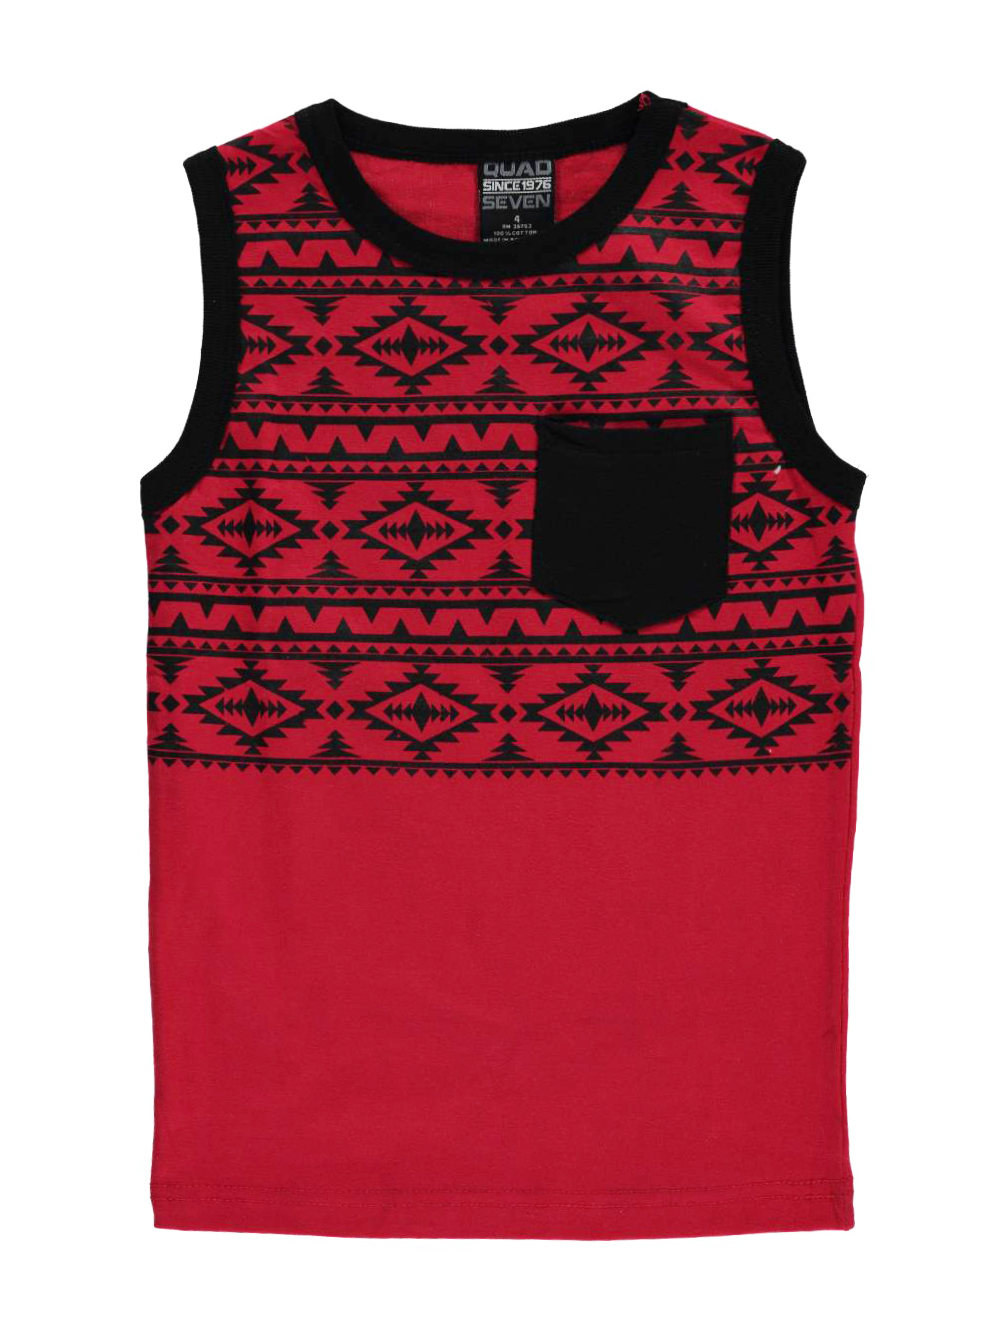 Image of Quad Seven Little Boys Toddler Tribal Upper Sleeveless TShirt Sizes 2T  4T  red 4t